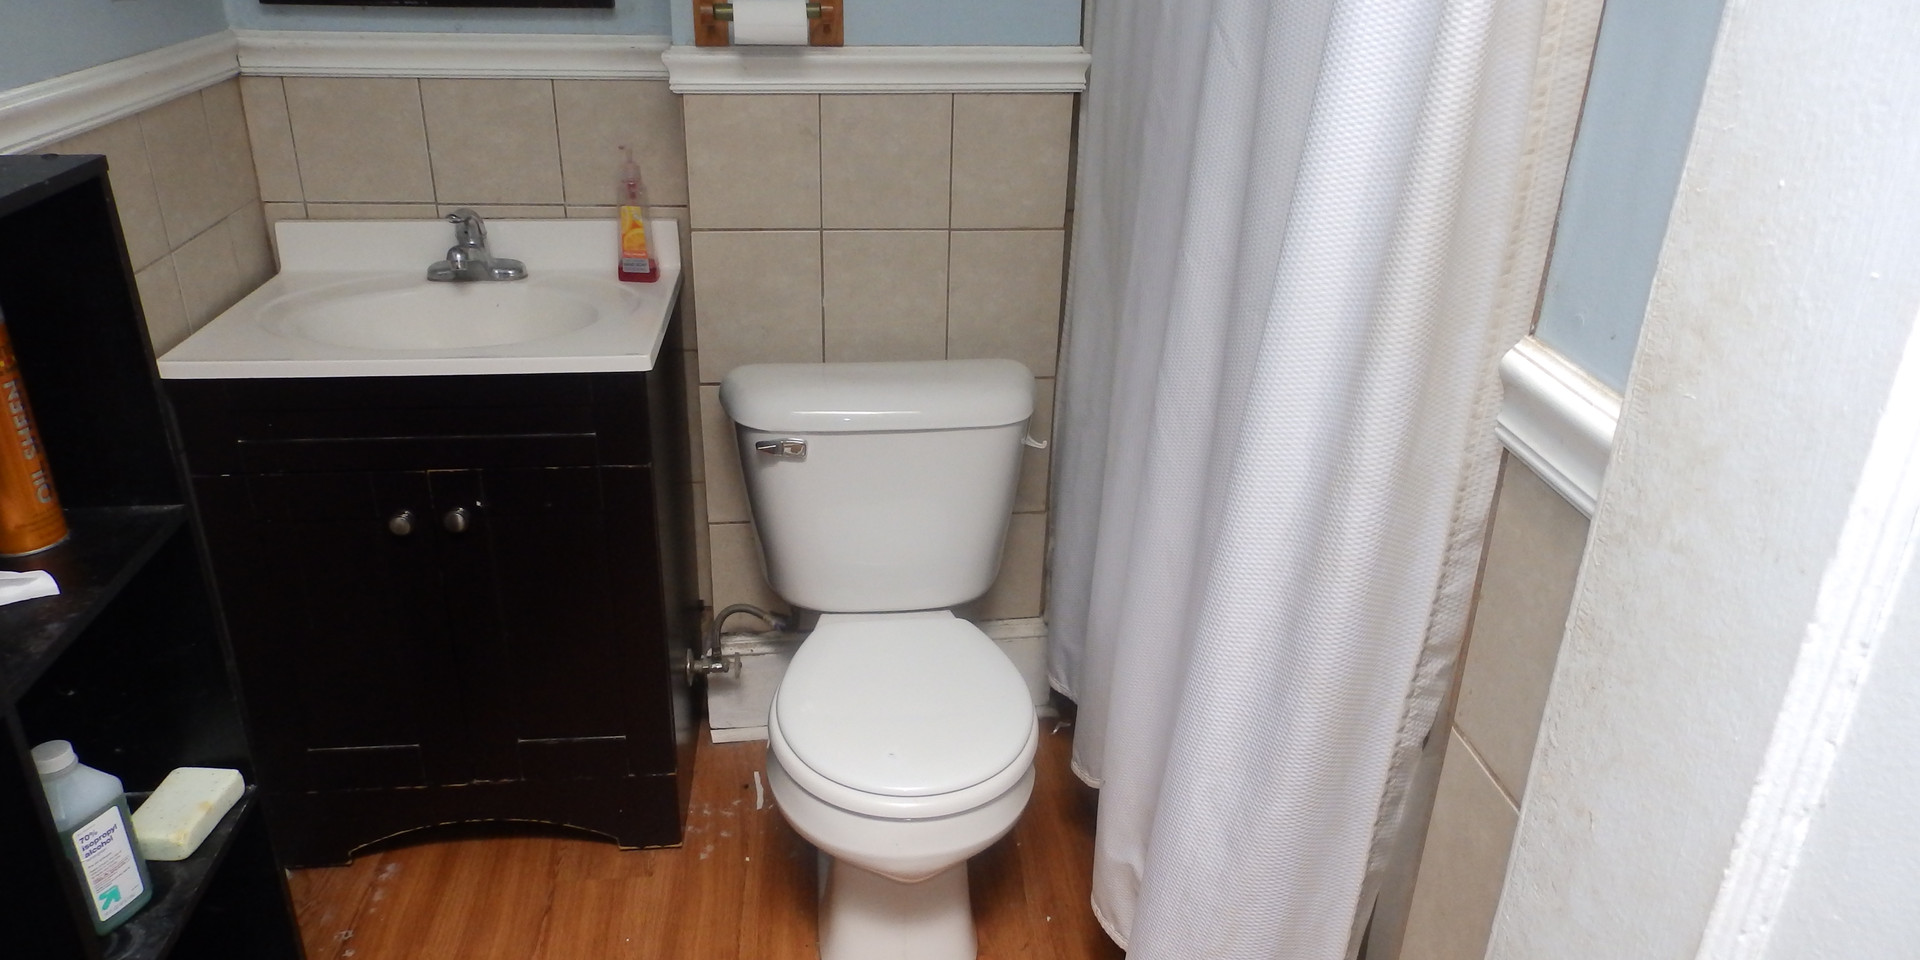 12 - Bathroom 3.JPG